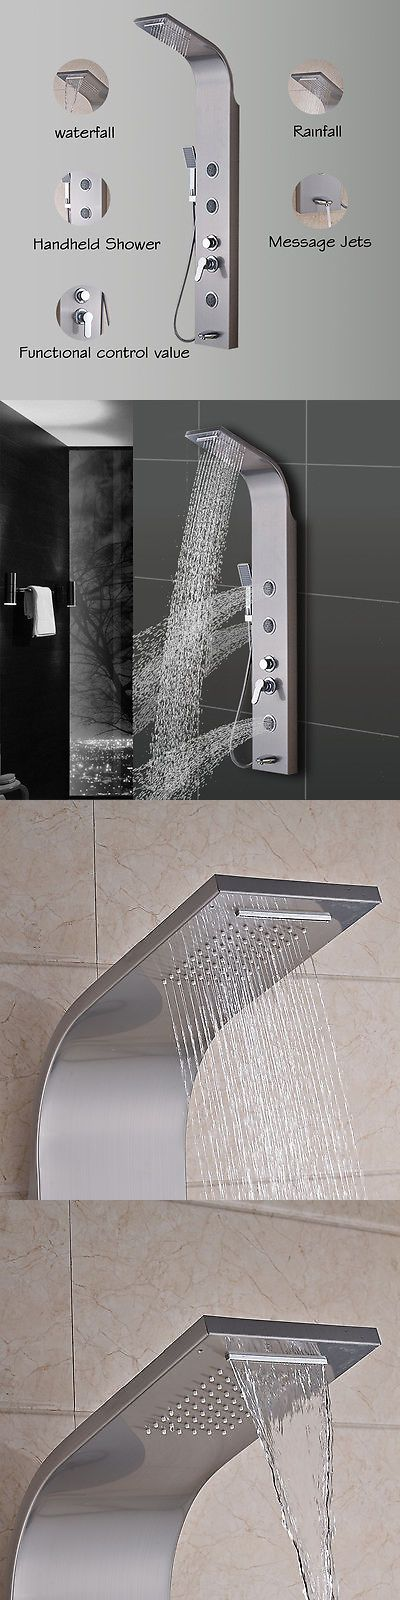 Shower Panels and Massagers 121849: Rainfall Stainless Steel Shower Tower Panel Nickel Brushed W Body Jets Sprayer -> BUY IT NOW ONLY: $89 on eBay!